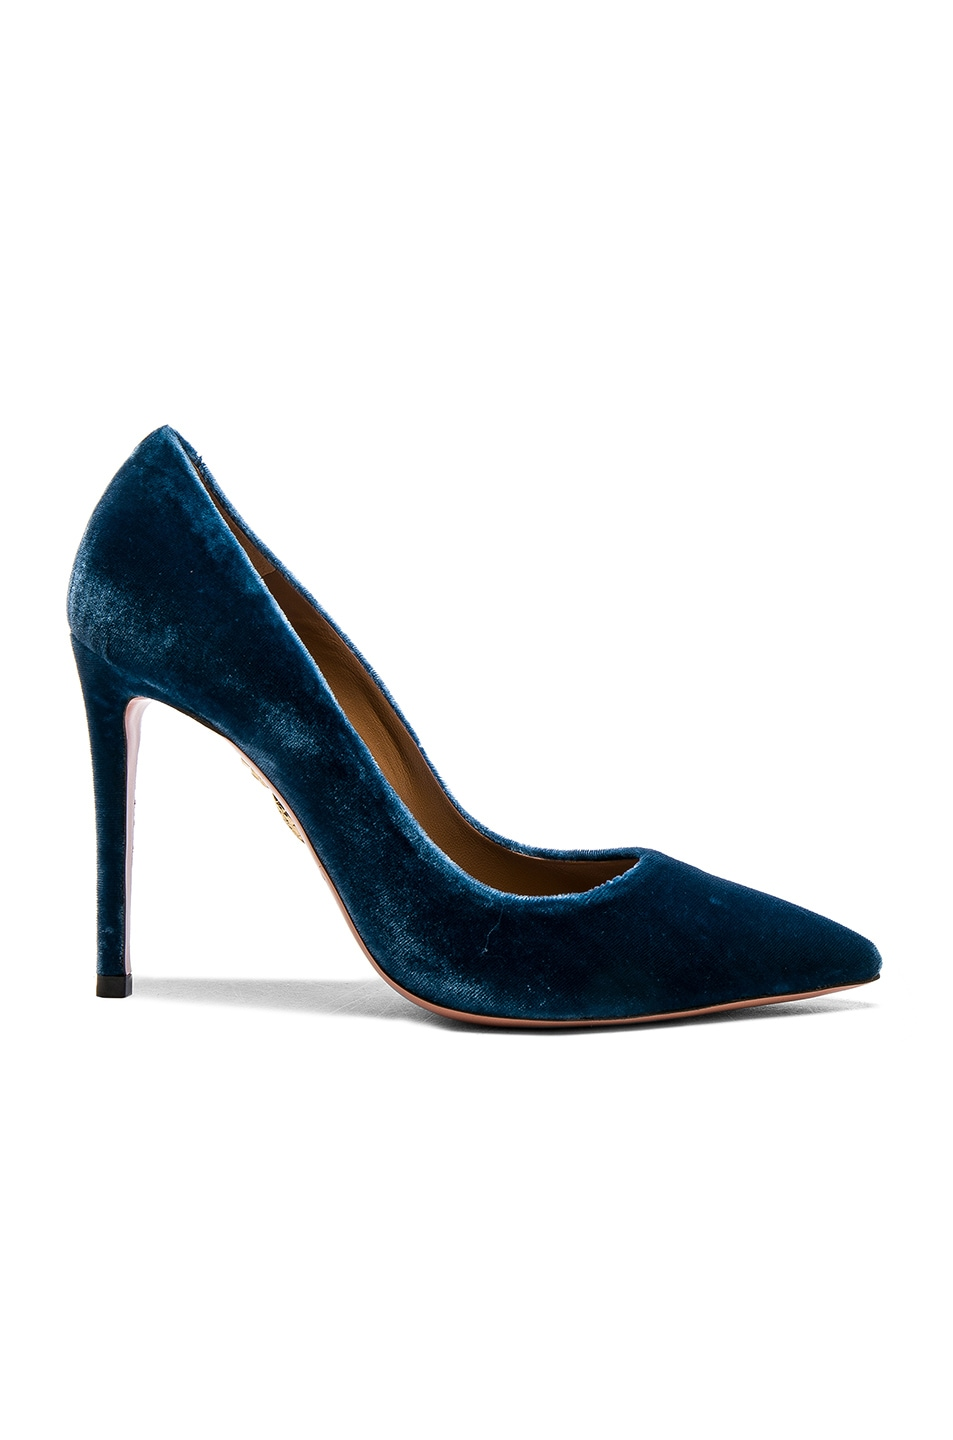 Image 1 of Aquazzura Velvet Simply Irresistible Heels in Ocean Blue